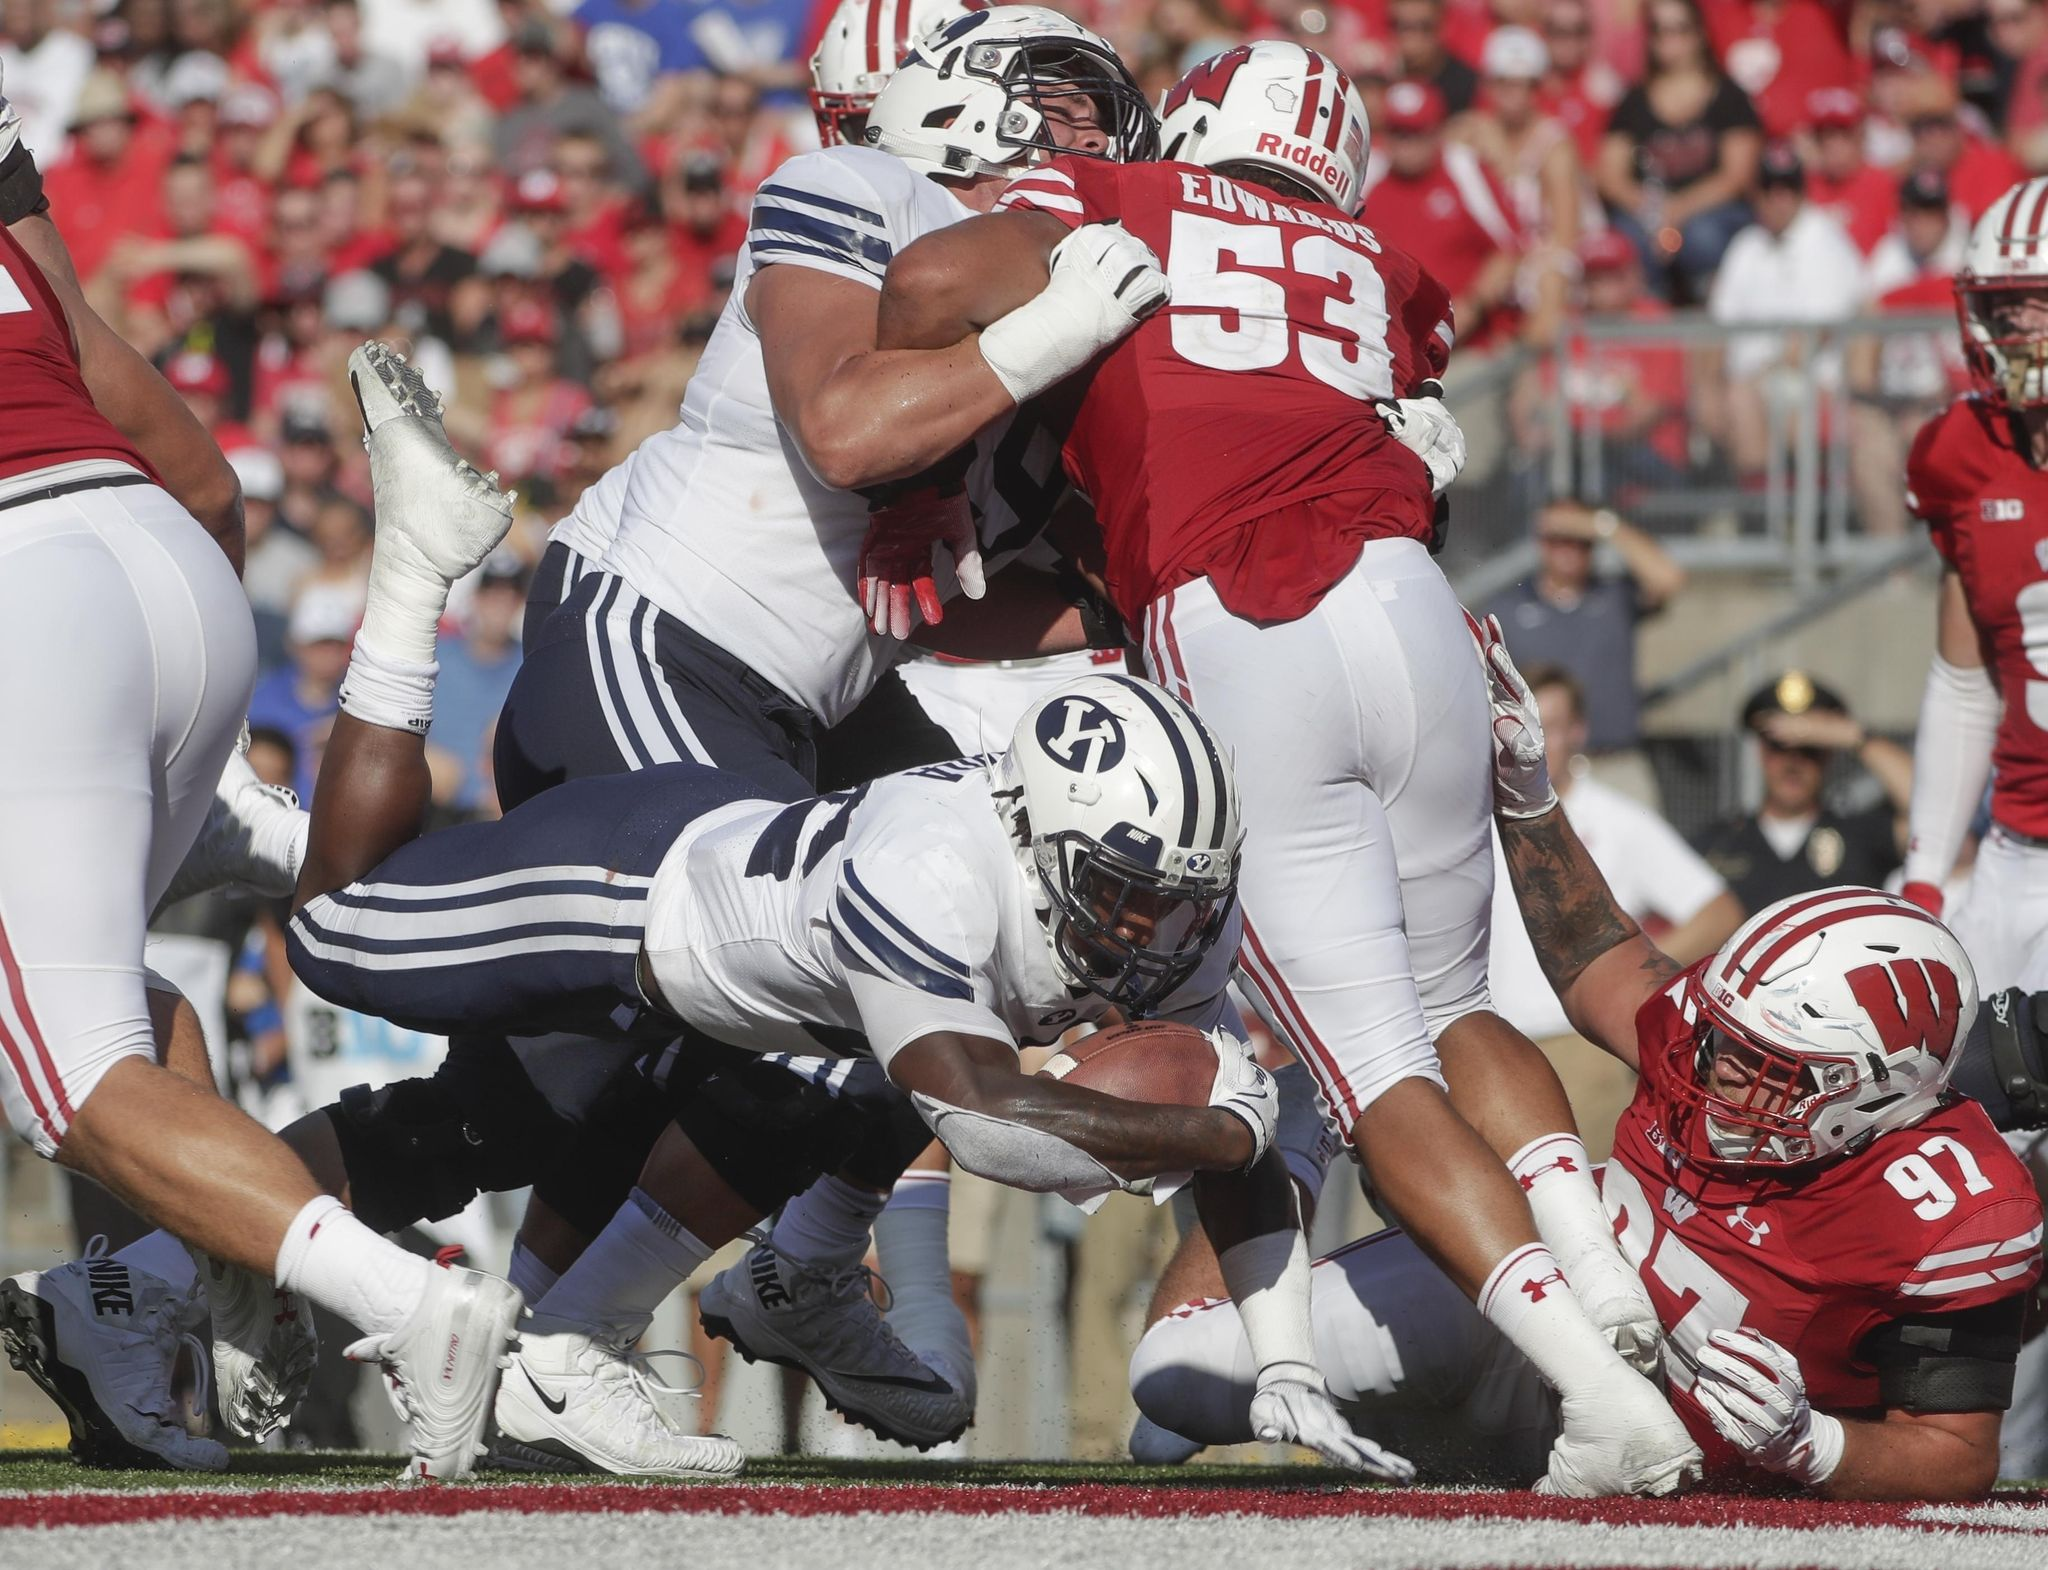 BYU showing toughness amid rugged early schedule - Washington Times